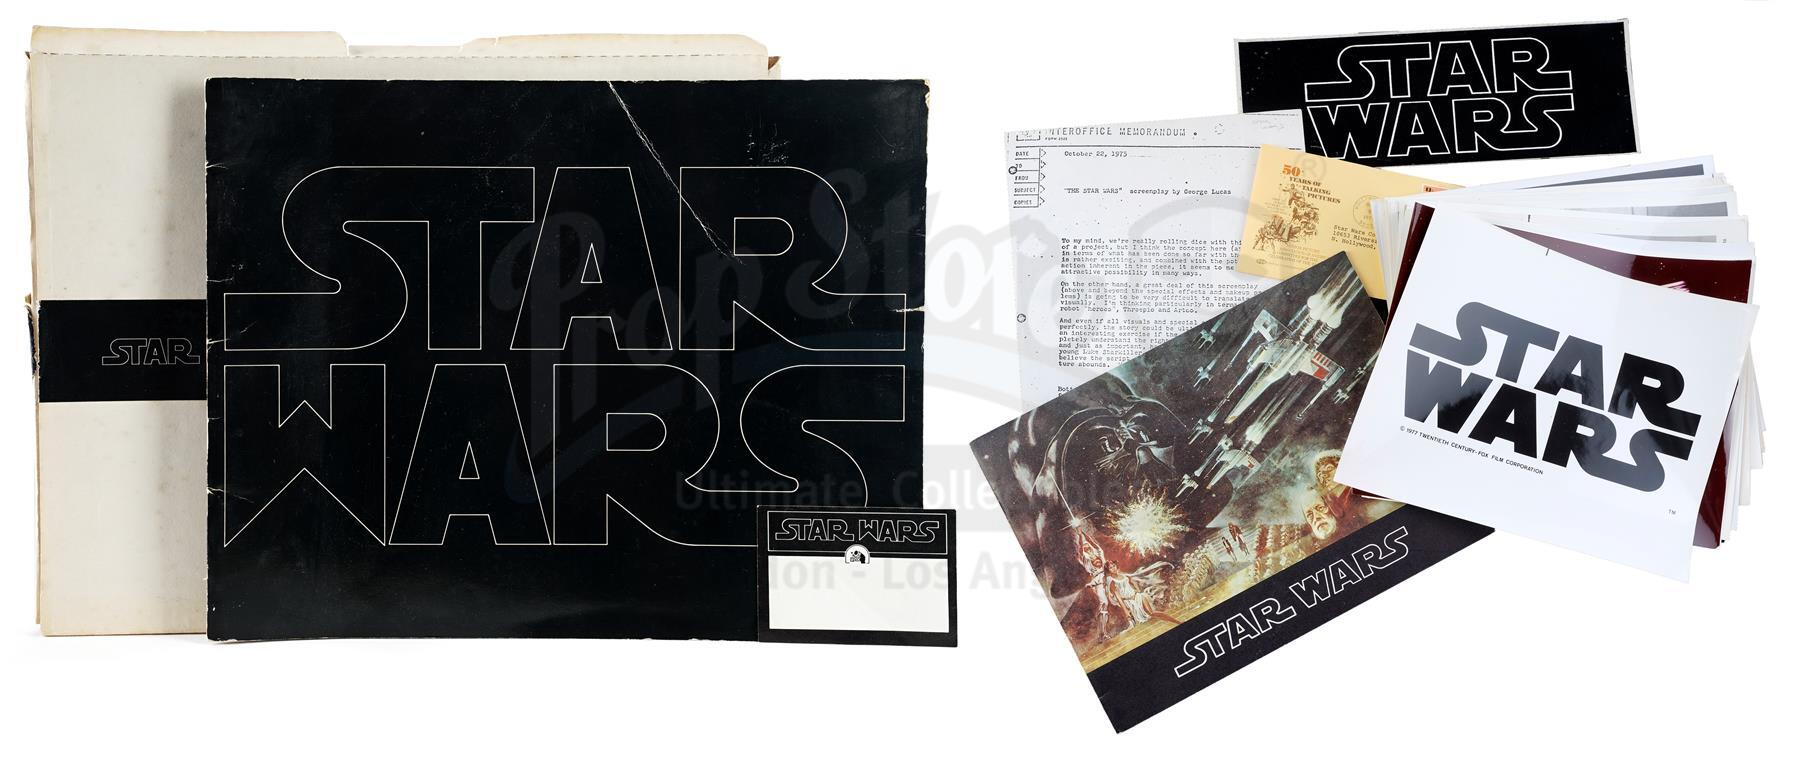 Lot # 1156: STAR WARS - EP IV - A NEW HOPE - Promotional Booklet, Box, and Stills with Star Wars Cor